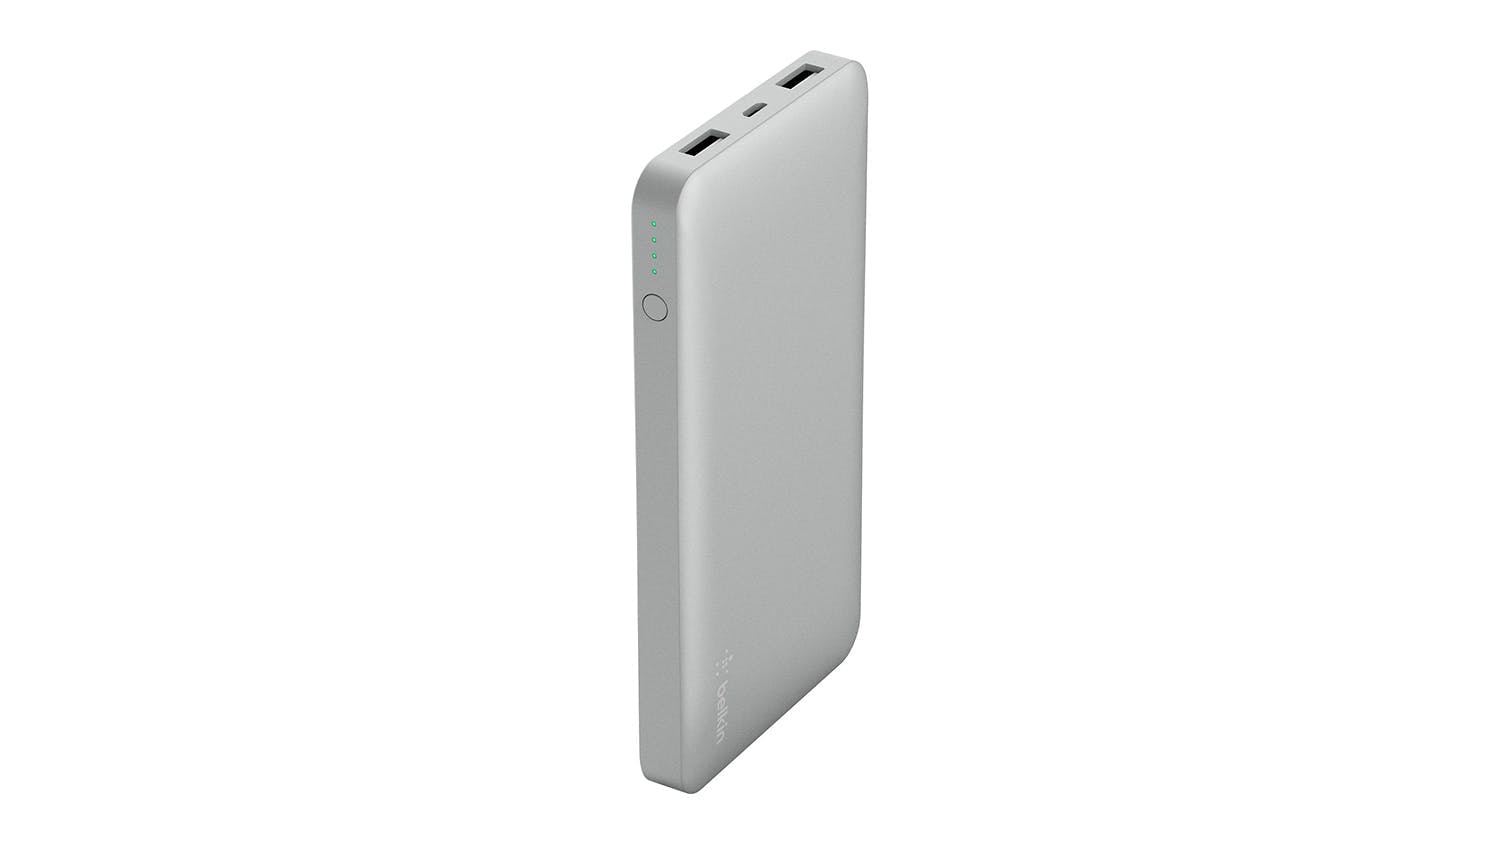 Belkin Pocket Power 10,000 mAh Power Bank - Silver